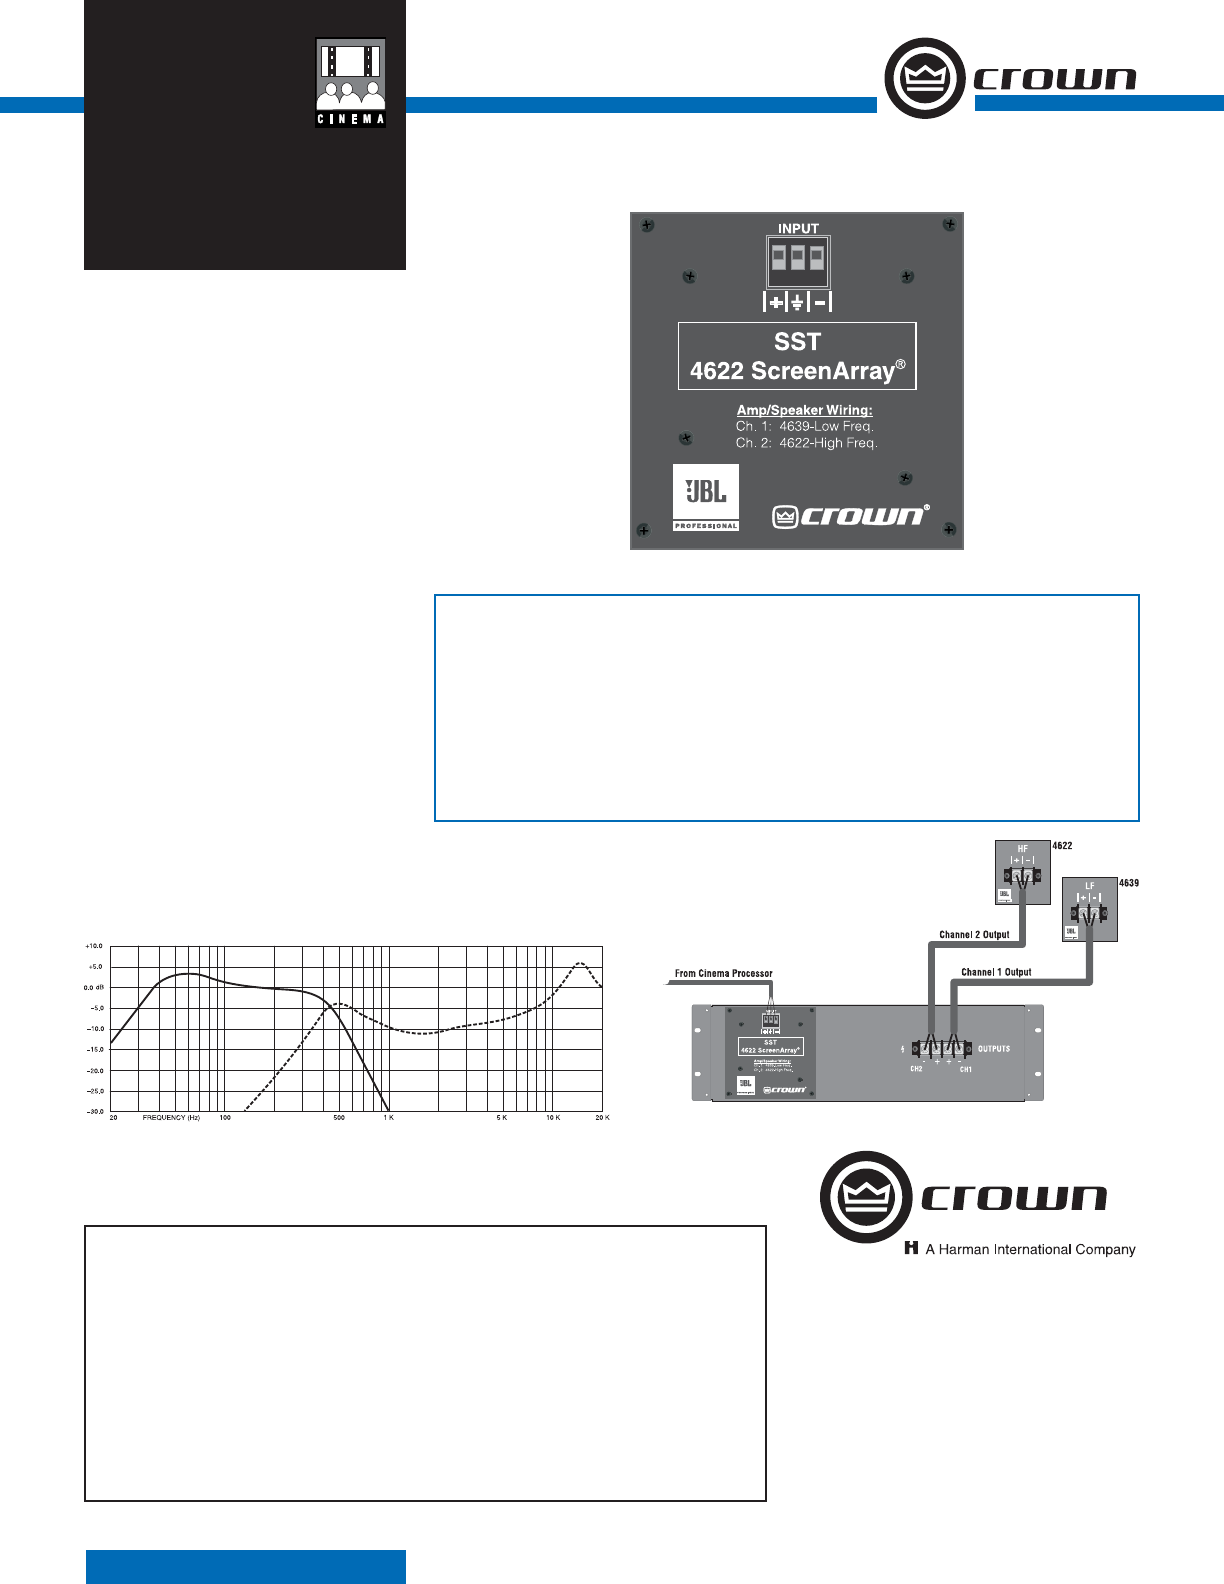 Crown Audio Stereo Amplifier Sst 4622 User Guide Manualsonlinecom Wiring Diagram Manual